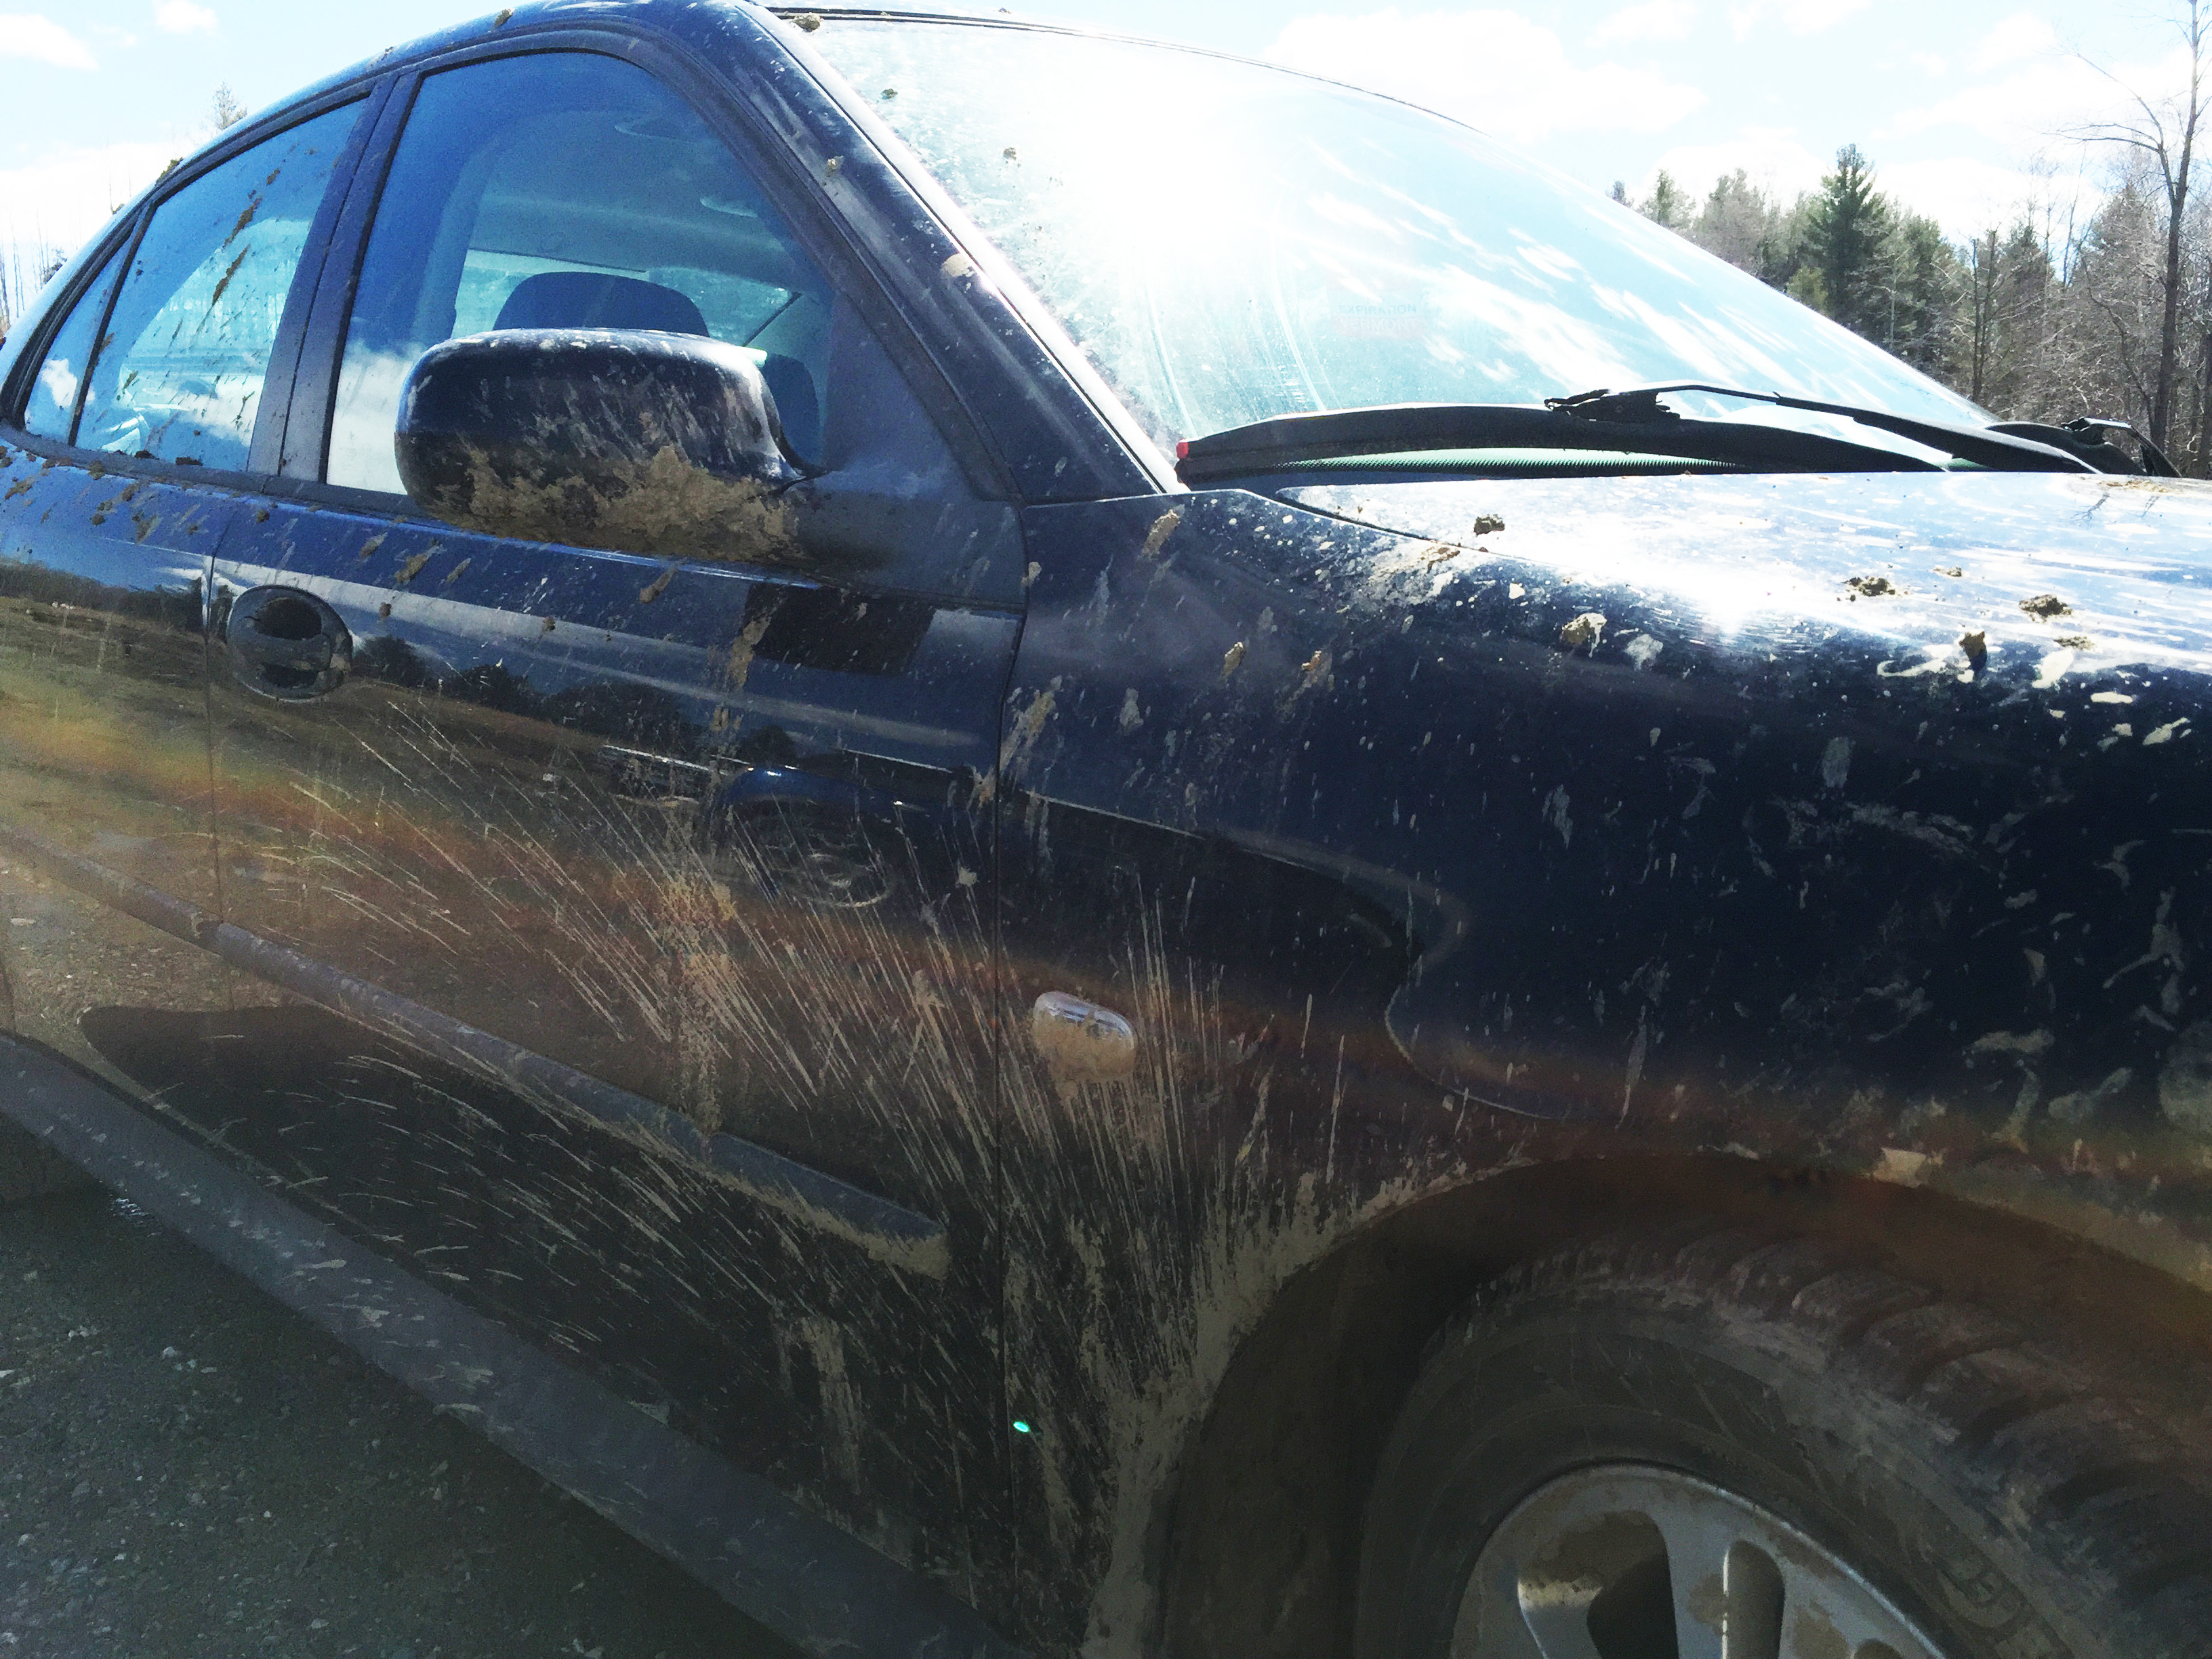 There's no point in washing my car during Vermont's Mud Month. This is just from going up the driveway and happens every day.